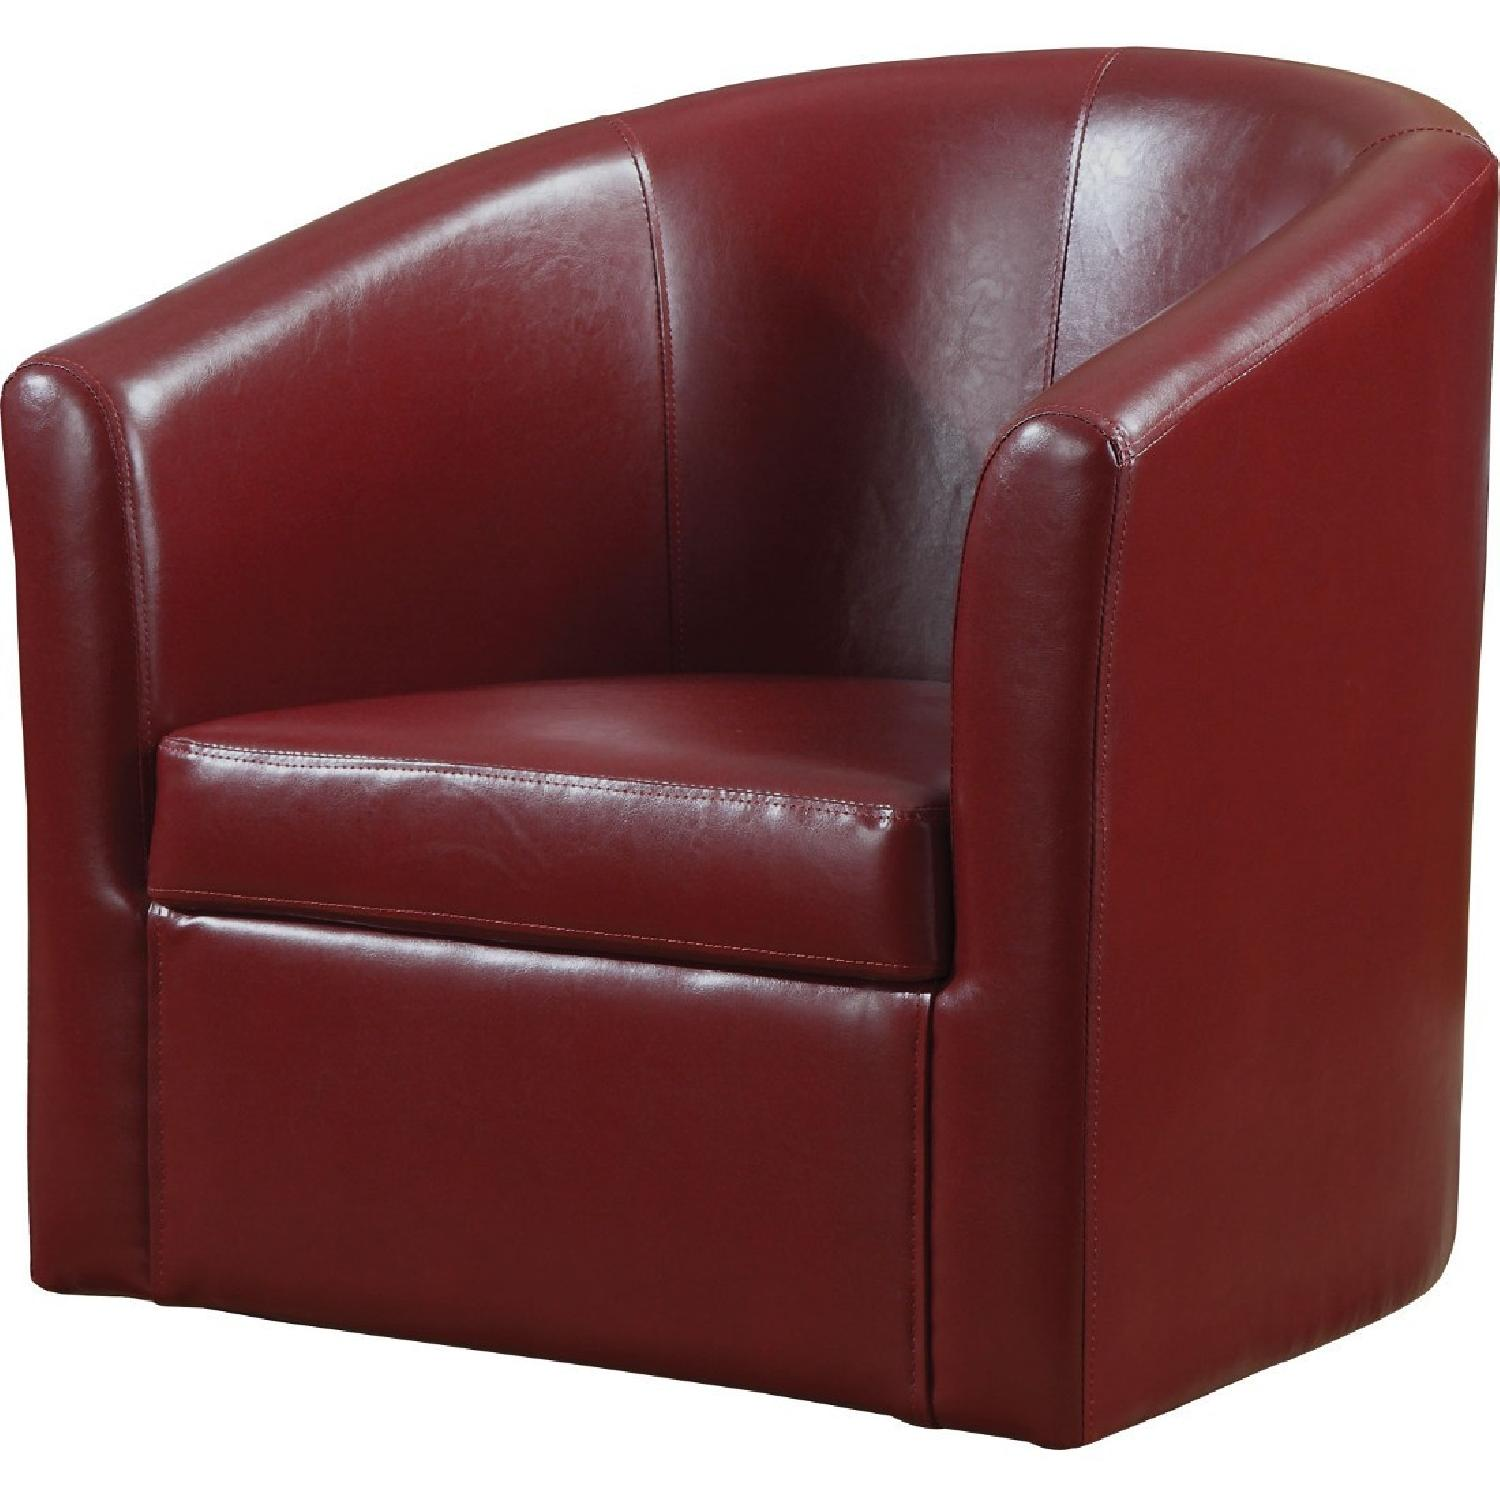 Modern Accent Chair in Red Faux Leather - image-0